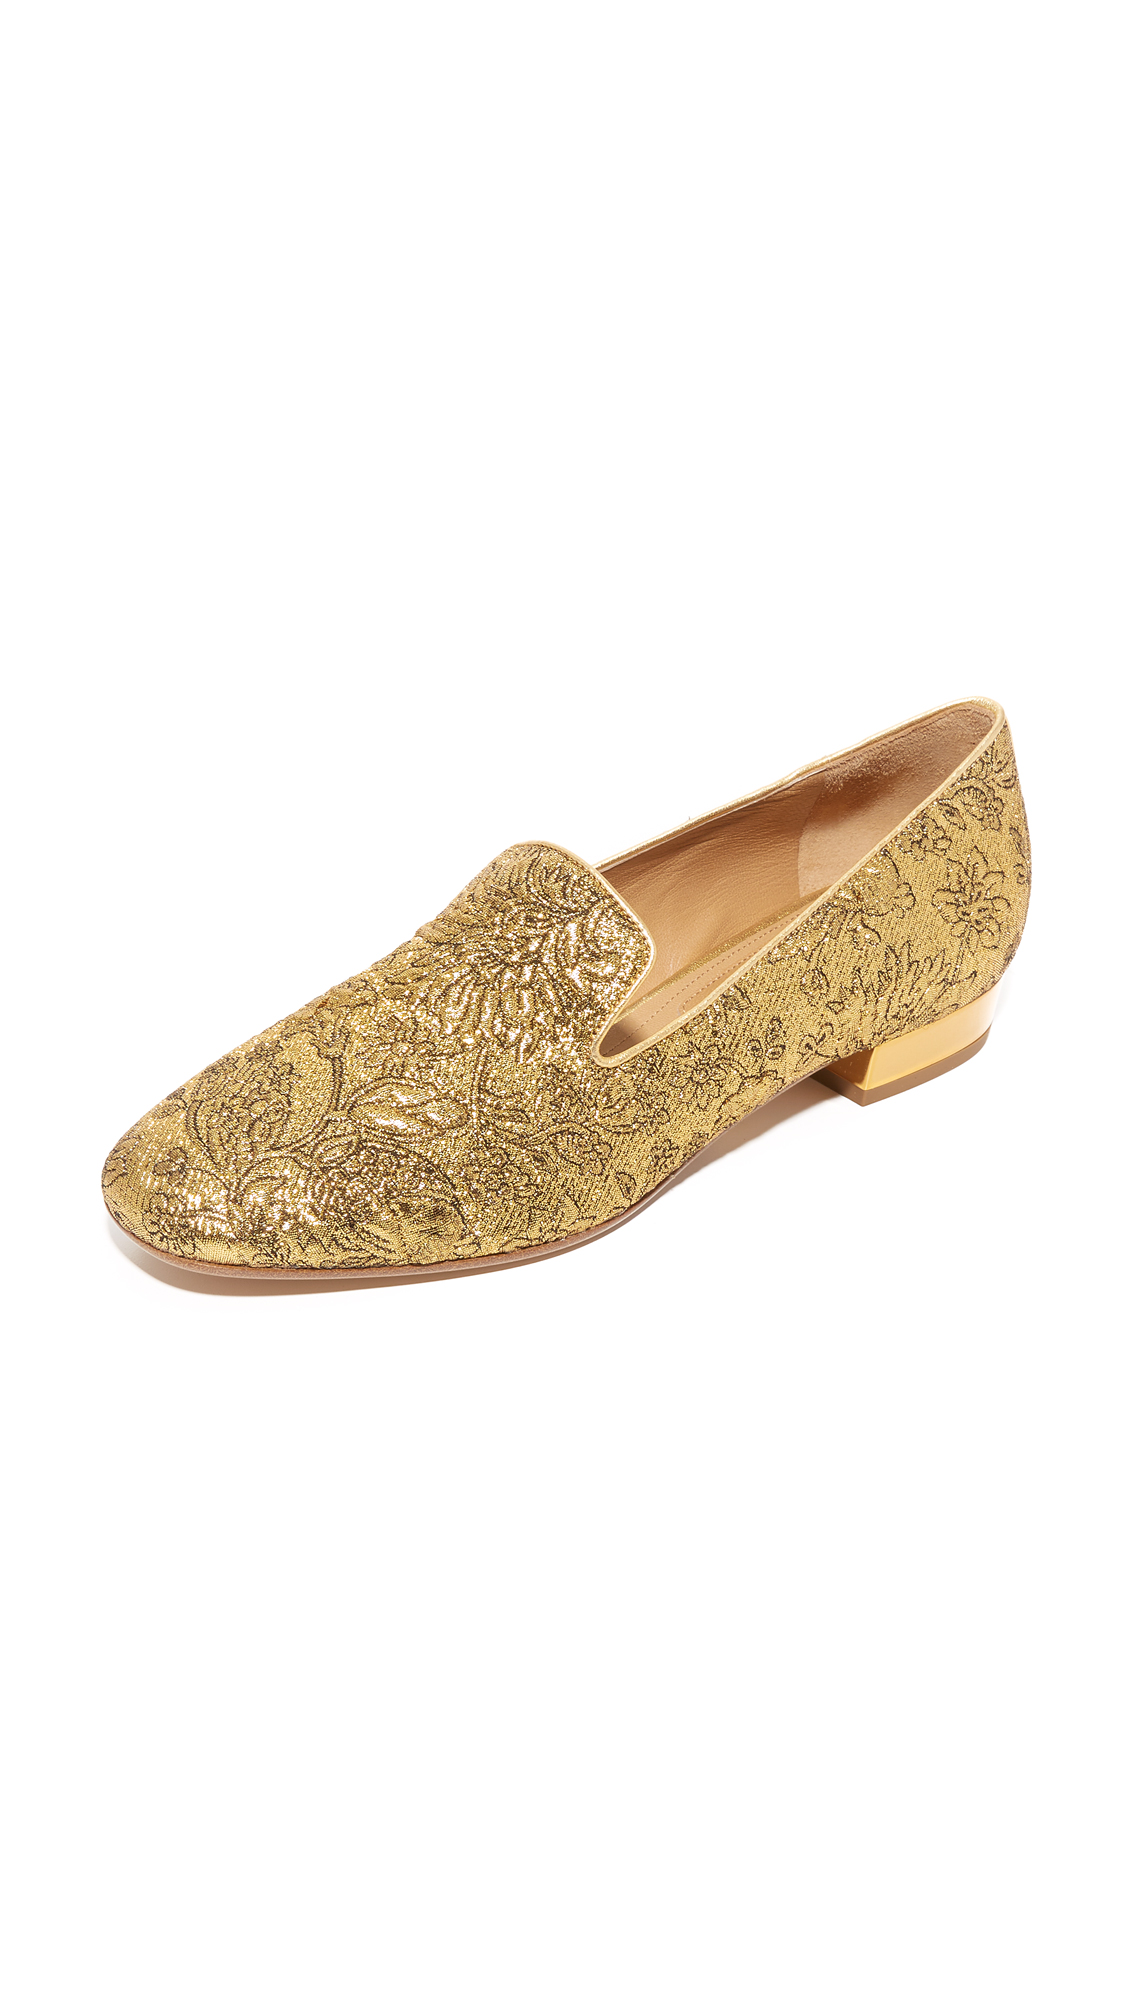 michael kors female 227361 michael kors collection roxanne floral brocade loafers gold